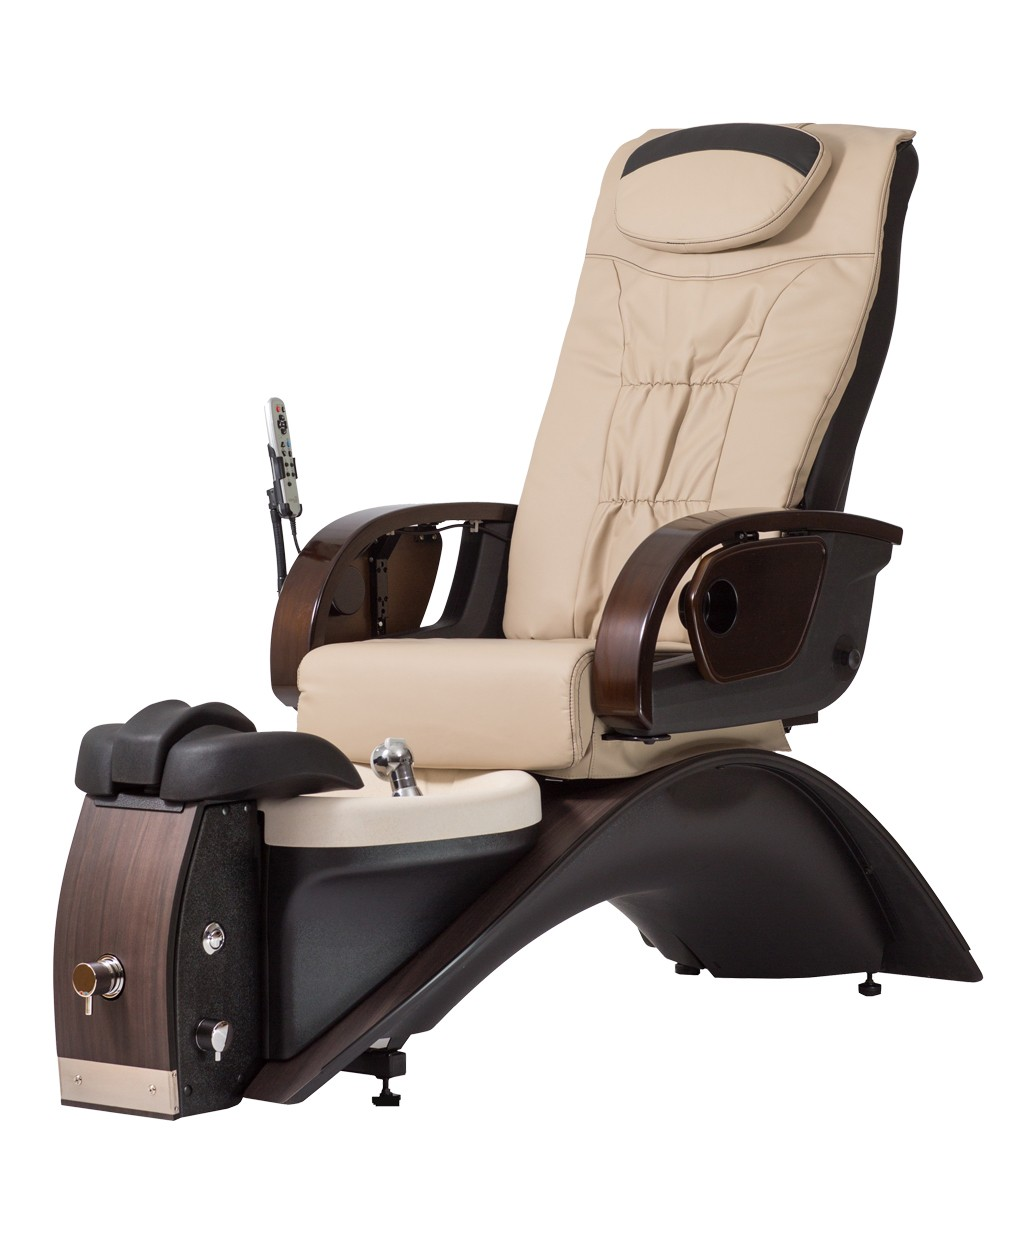 Pedicure and manicure chairs - Pedicure And Manicure Chairs